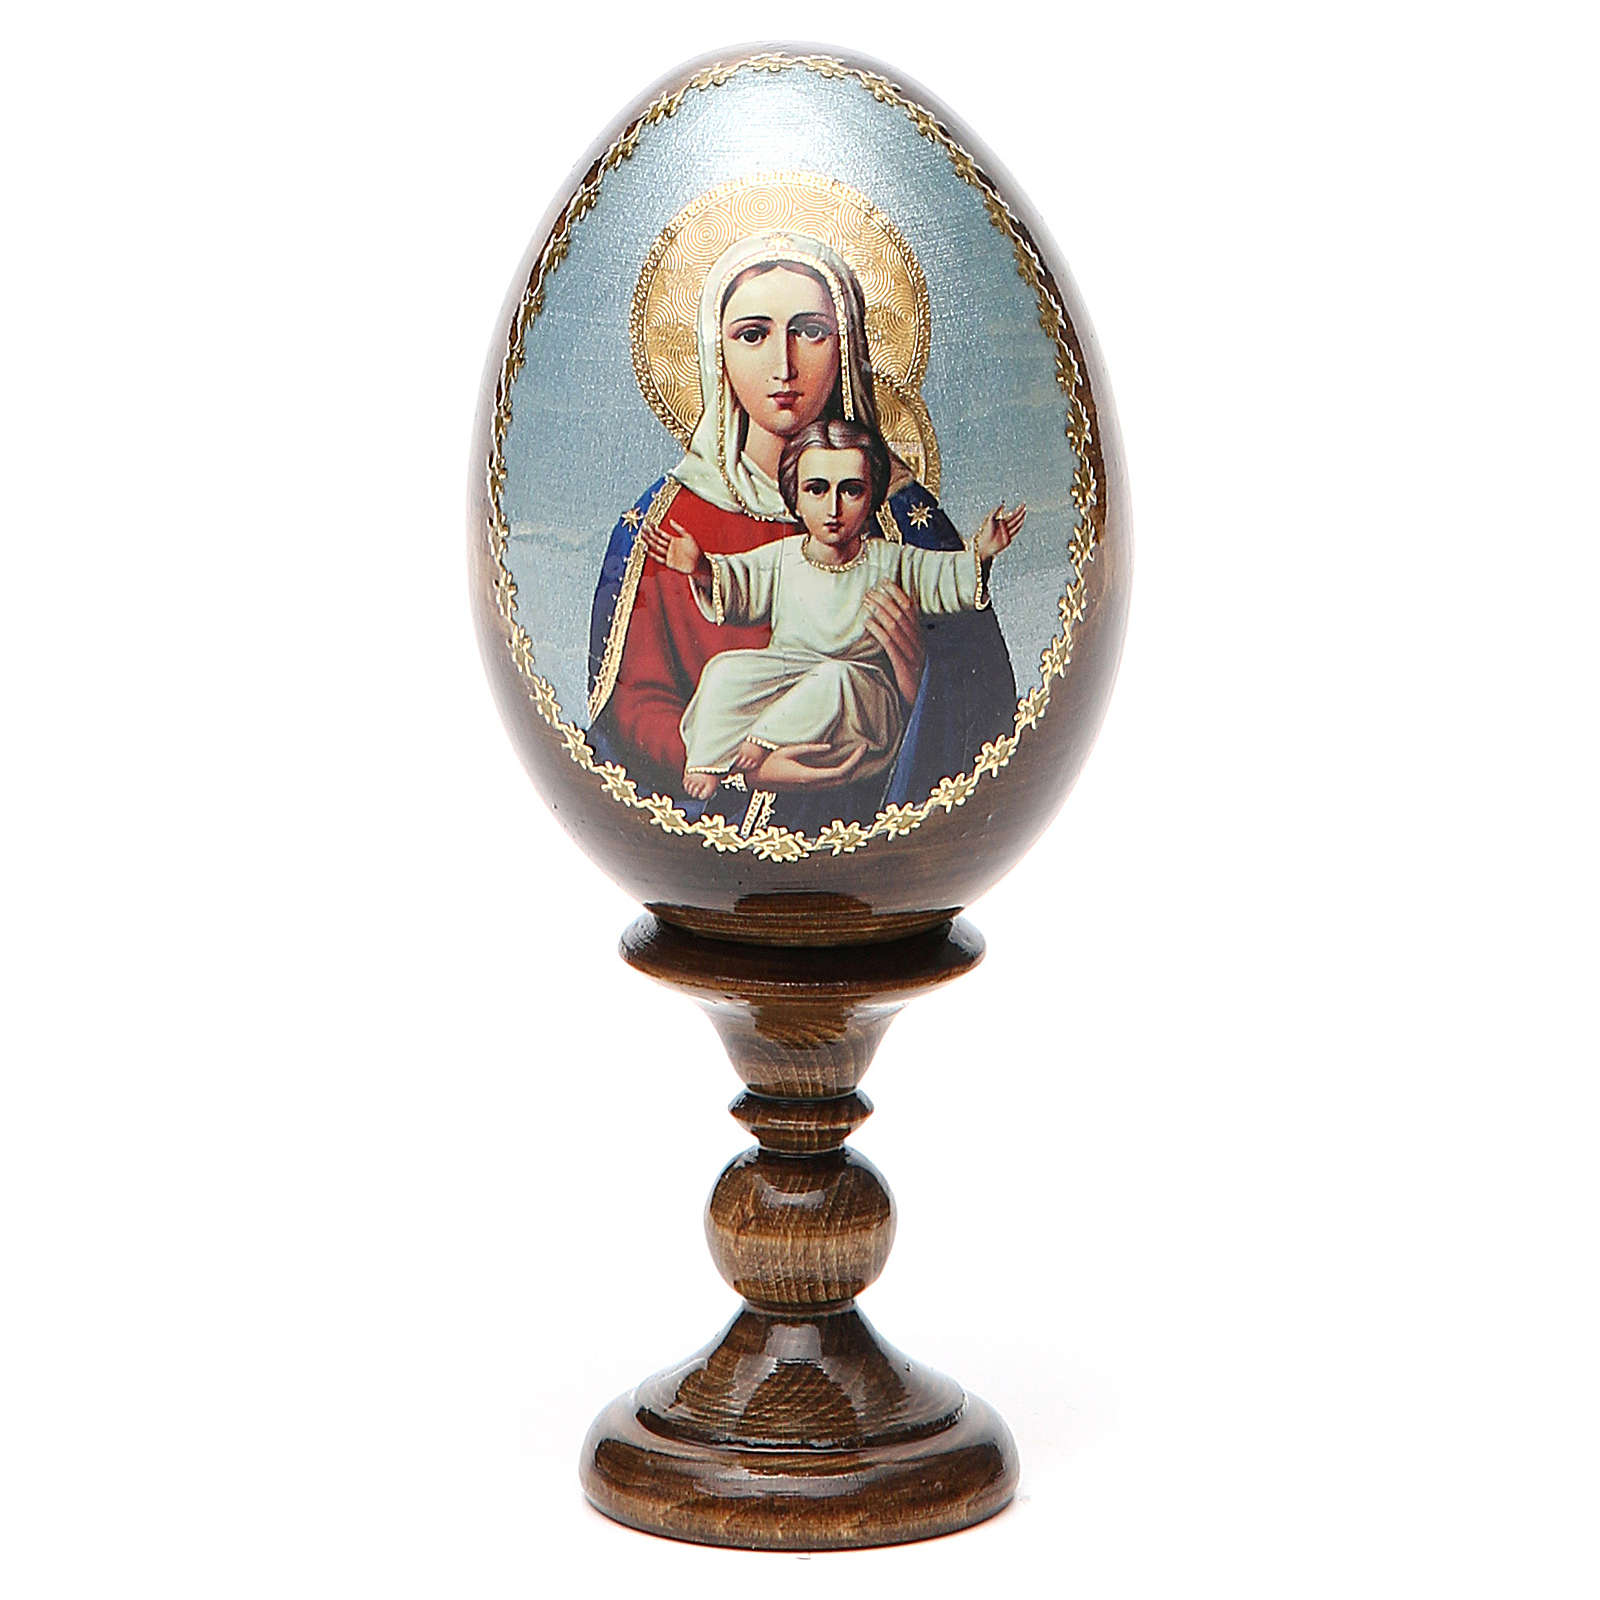 Russian Egg I'm with You découpage 13cm 4